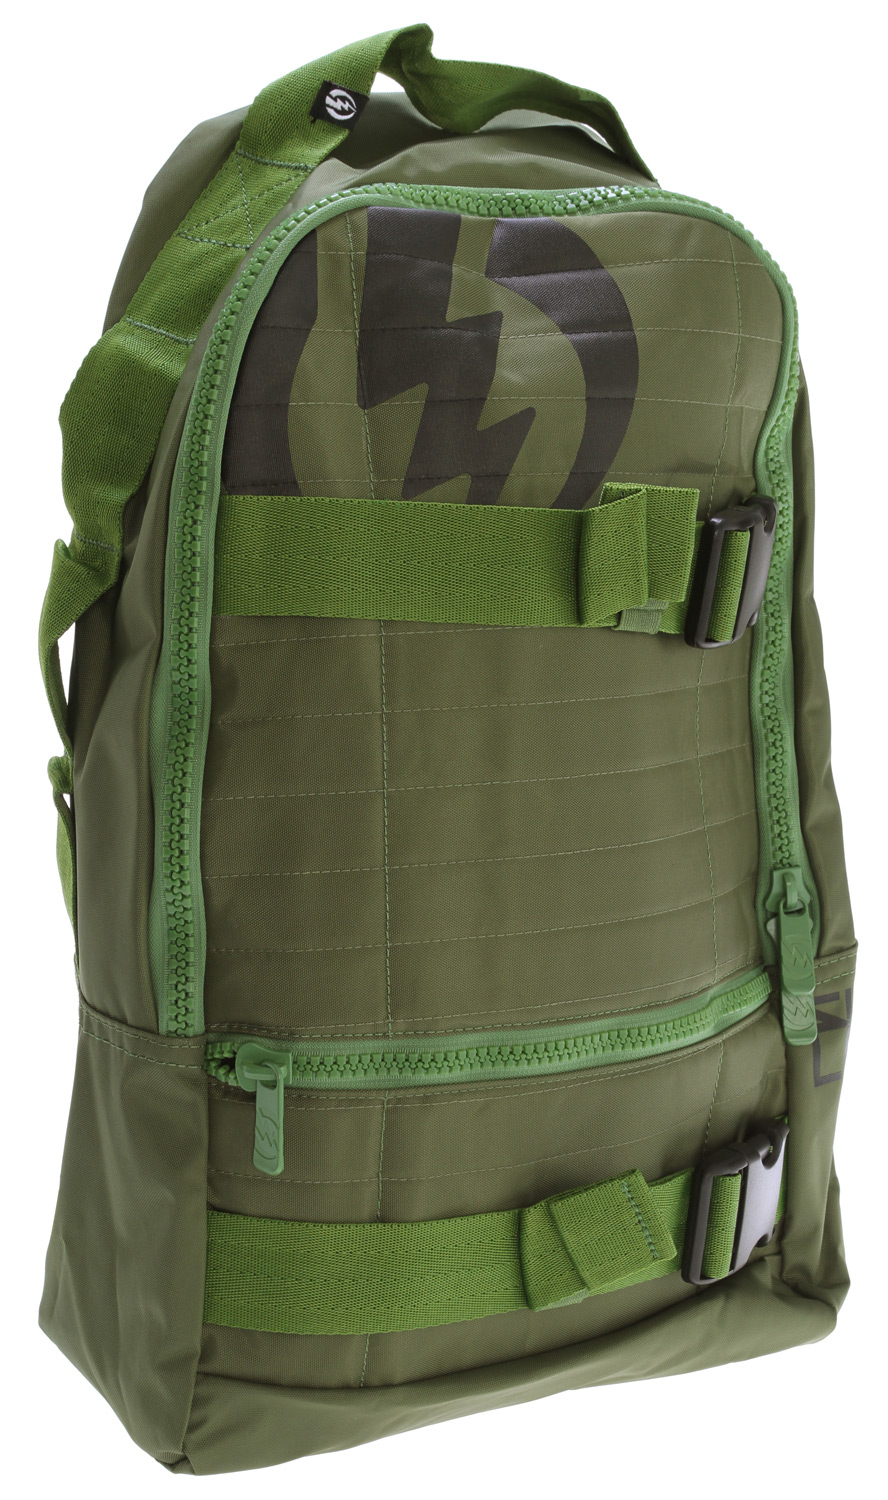 "Skateboard Key Features of the Electric MK2 Backpack Army: Skate Pack One Main Compartment With Interior Organizer Front Pocket 100% Polyester Dimensions: 18"" X 11"" X 7"" - $30.95"